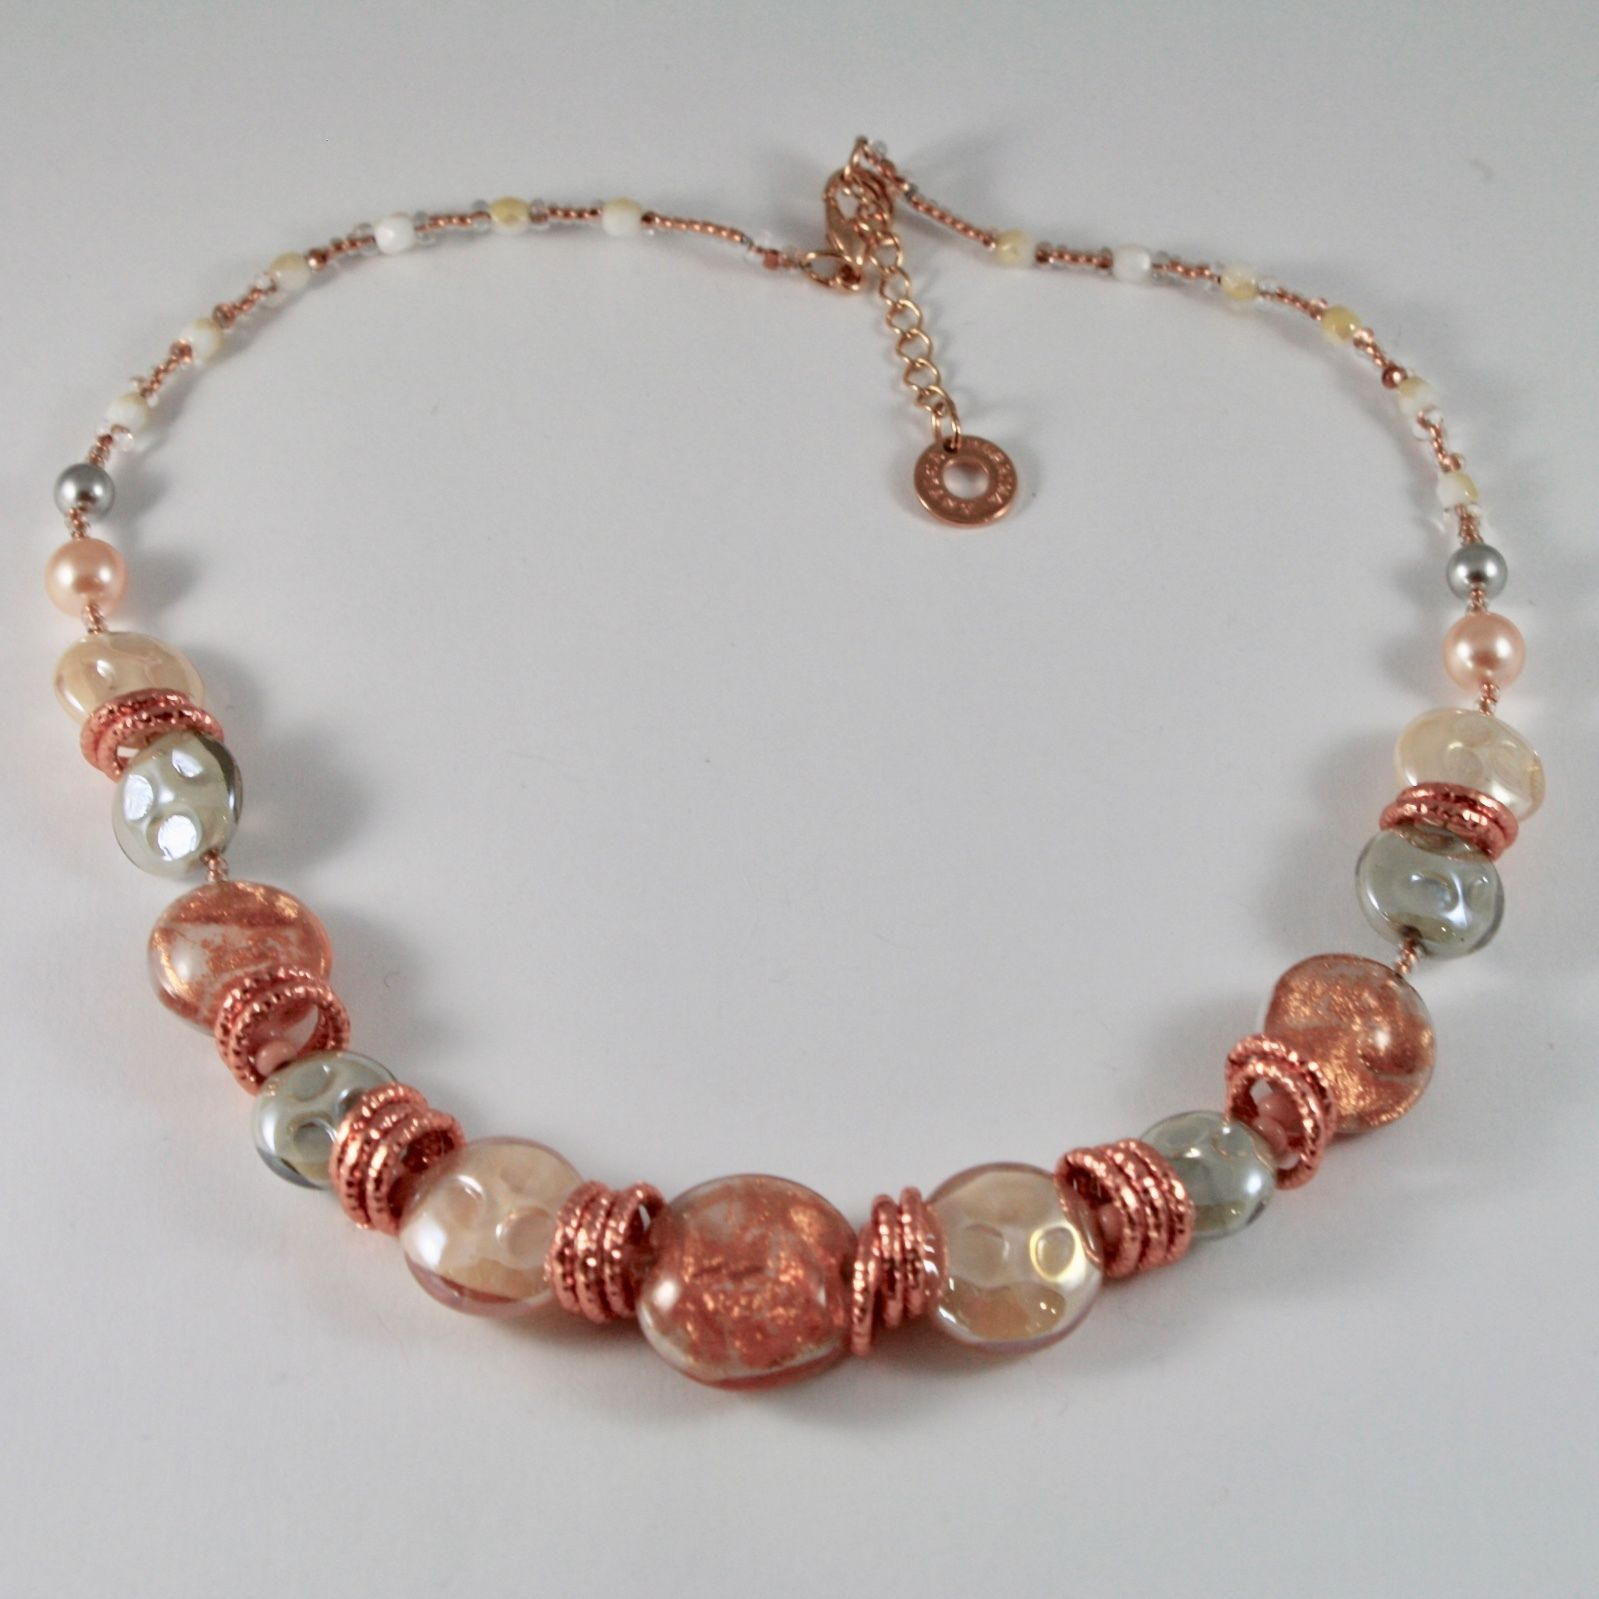 ANTICA MURRINA VENEZIA DAMASCO NECKLACE WITH MURANO GLASS DISCS 18 INCHES LONG